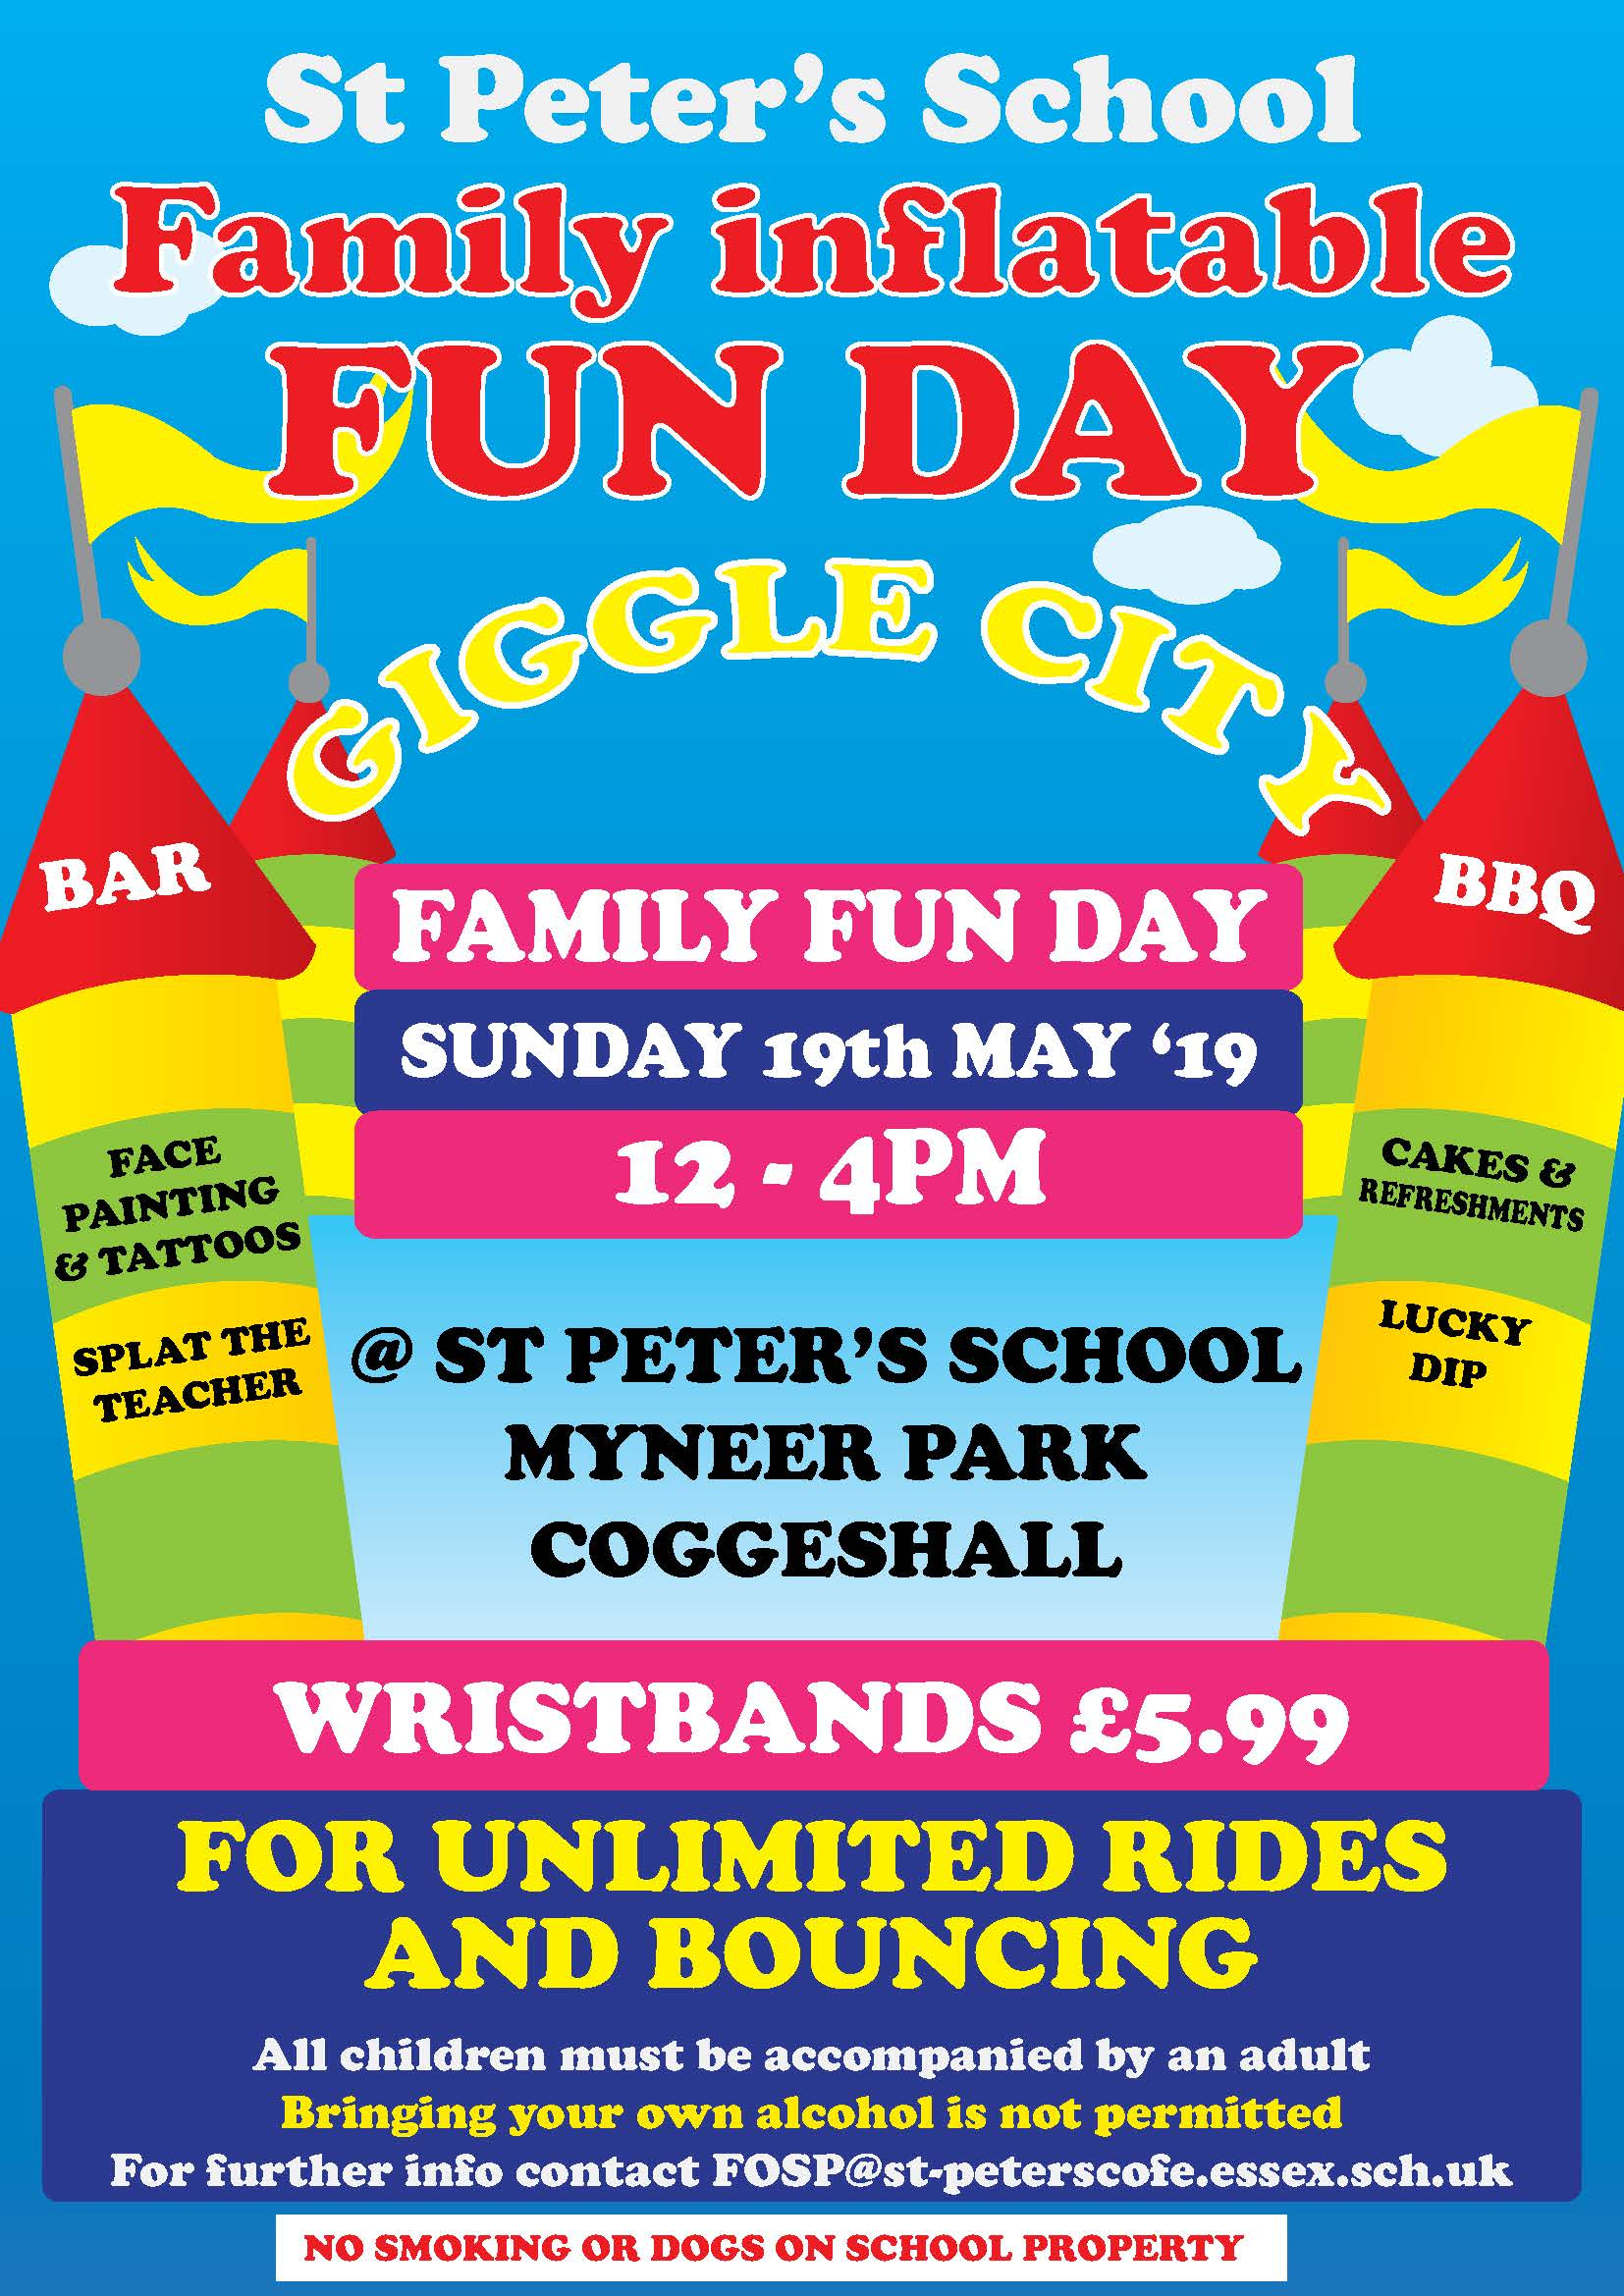 St Peter's School Family Inflatable Fun Day